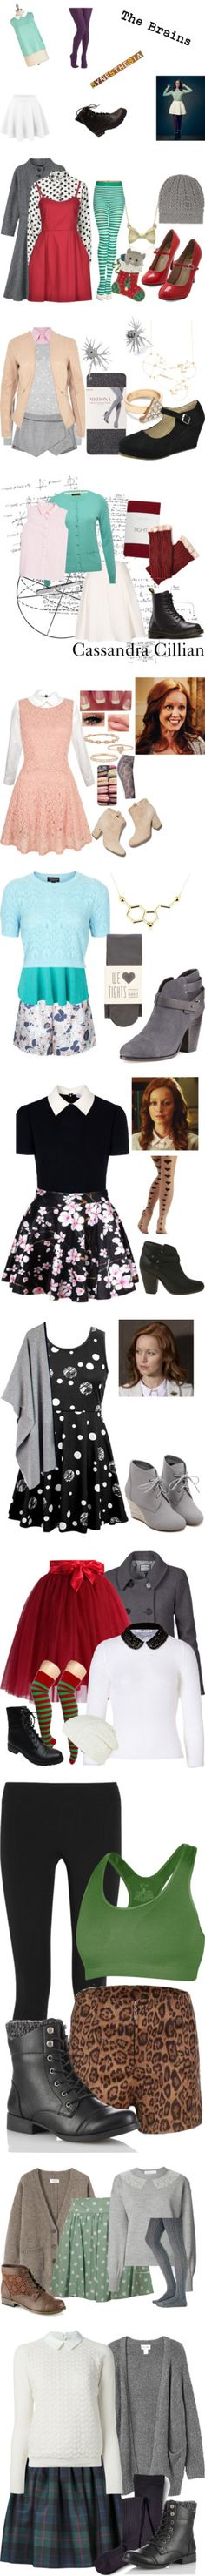 Librarians by faylinnzannasri on Polyvore featuring Bamboo, Toast, Poppy Lux, Tonello, Madeleine Thompson, theLibrarians, Merona, Polo Ralph Lauren, J.Crew and Poem